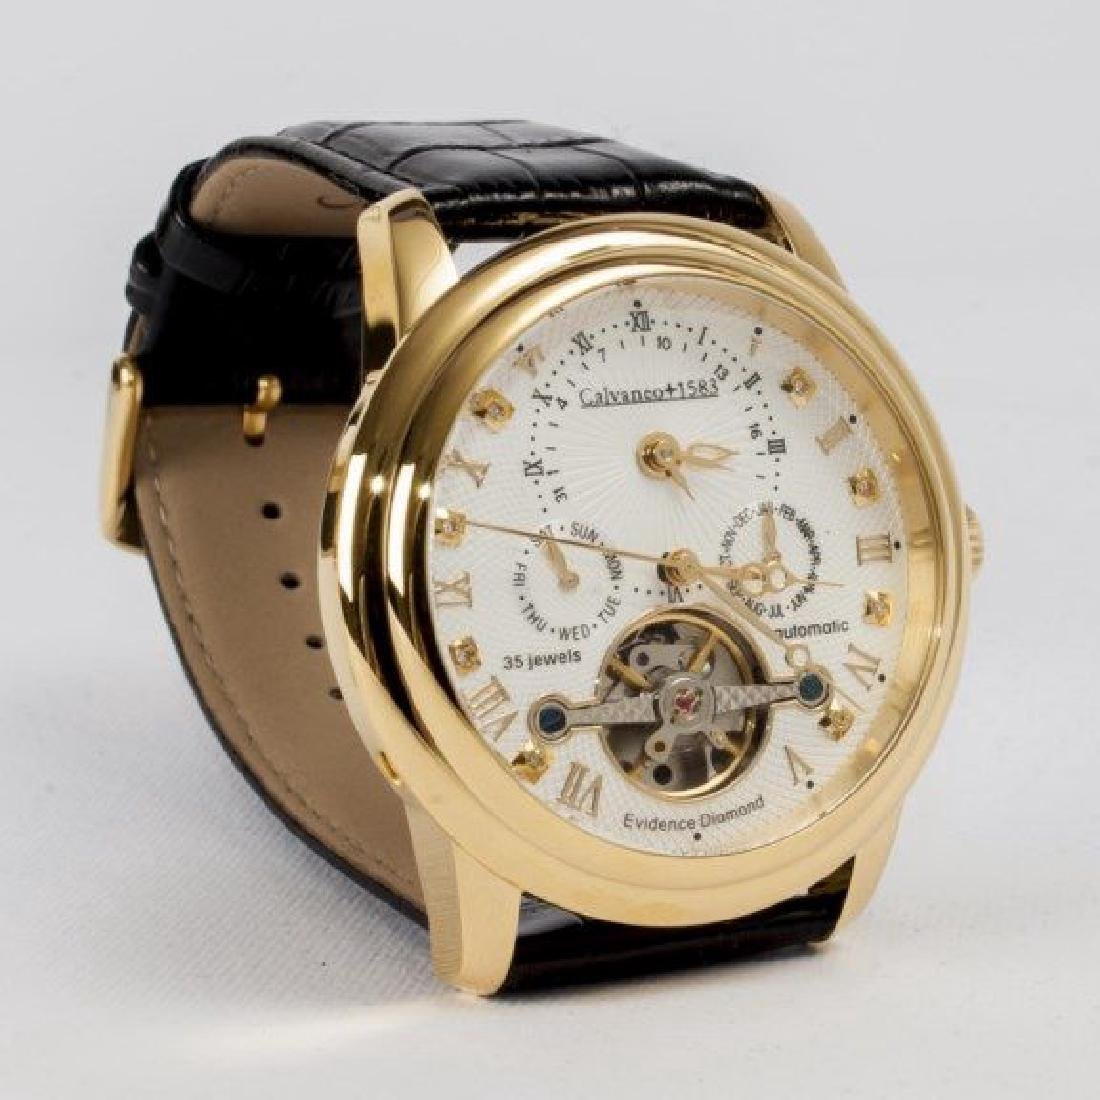 Calvaneo Evidence Diamond Gold Plated Dualtimer Watch - 2